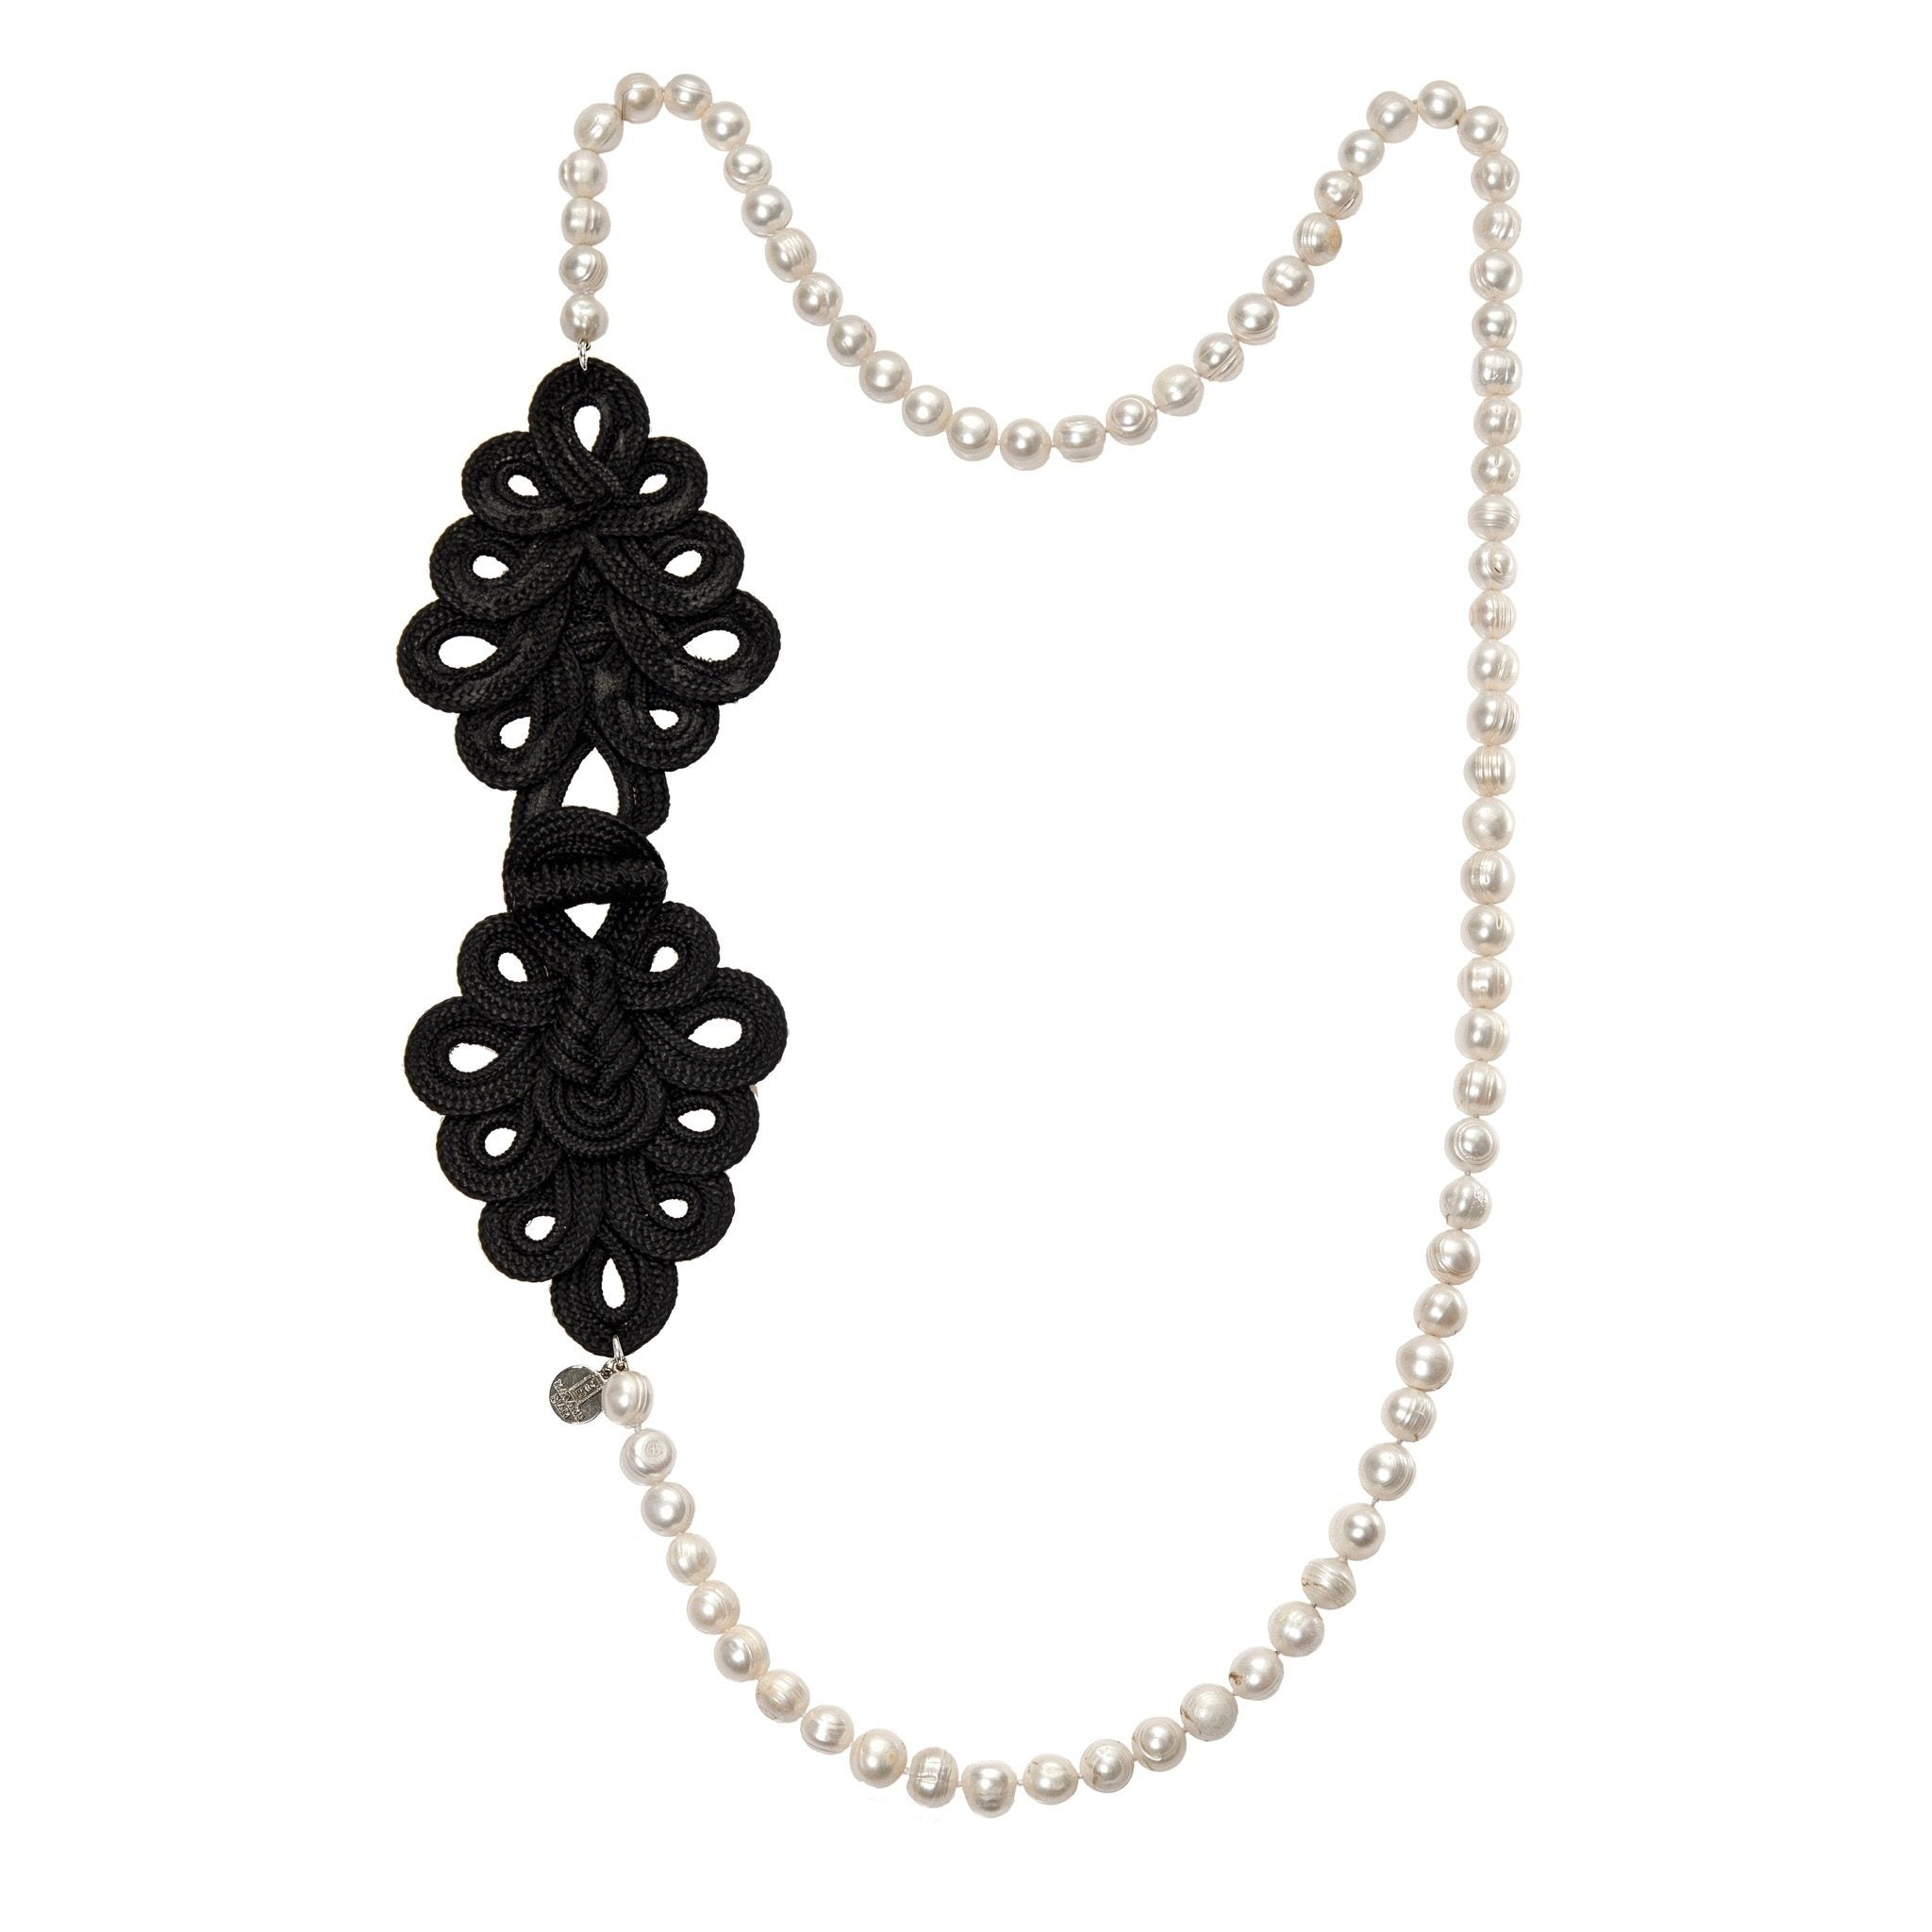 SAIGON freshwater pearls necklace - MadamSiam